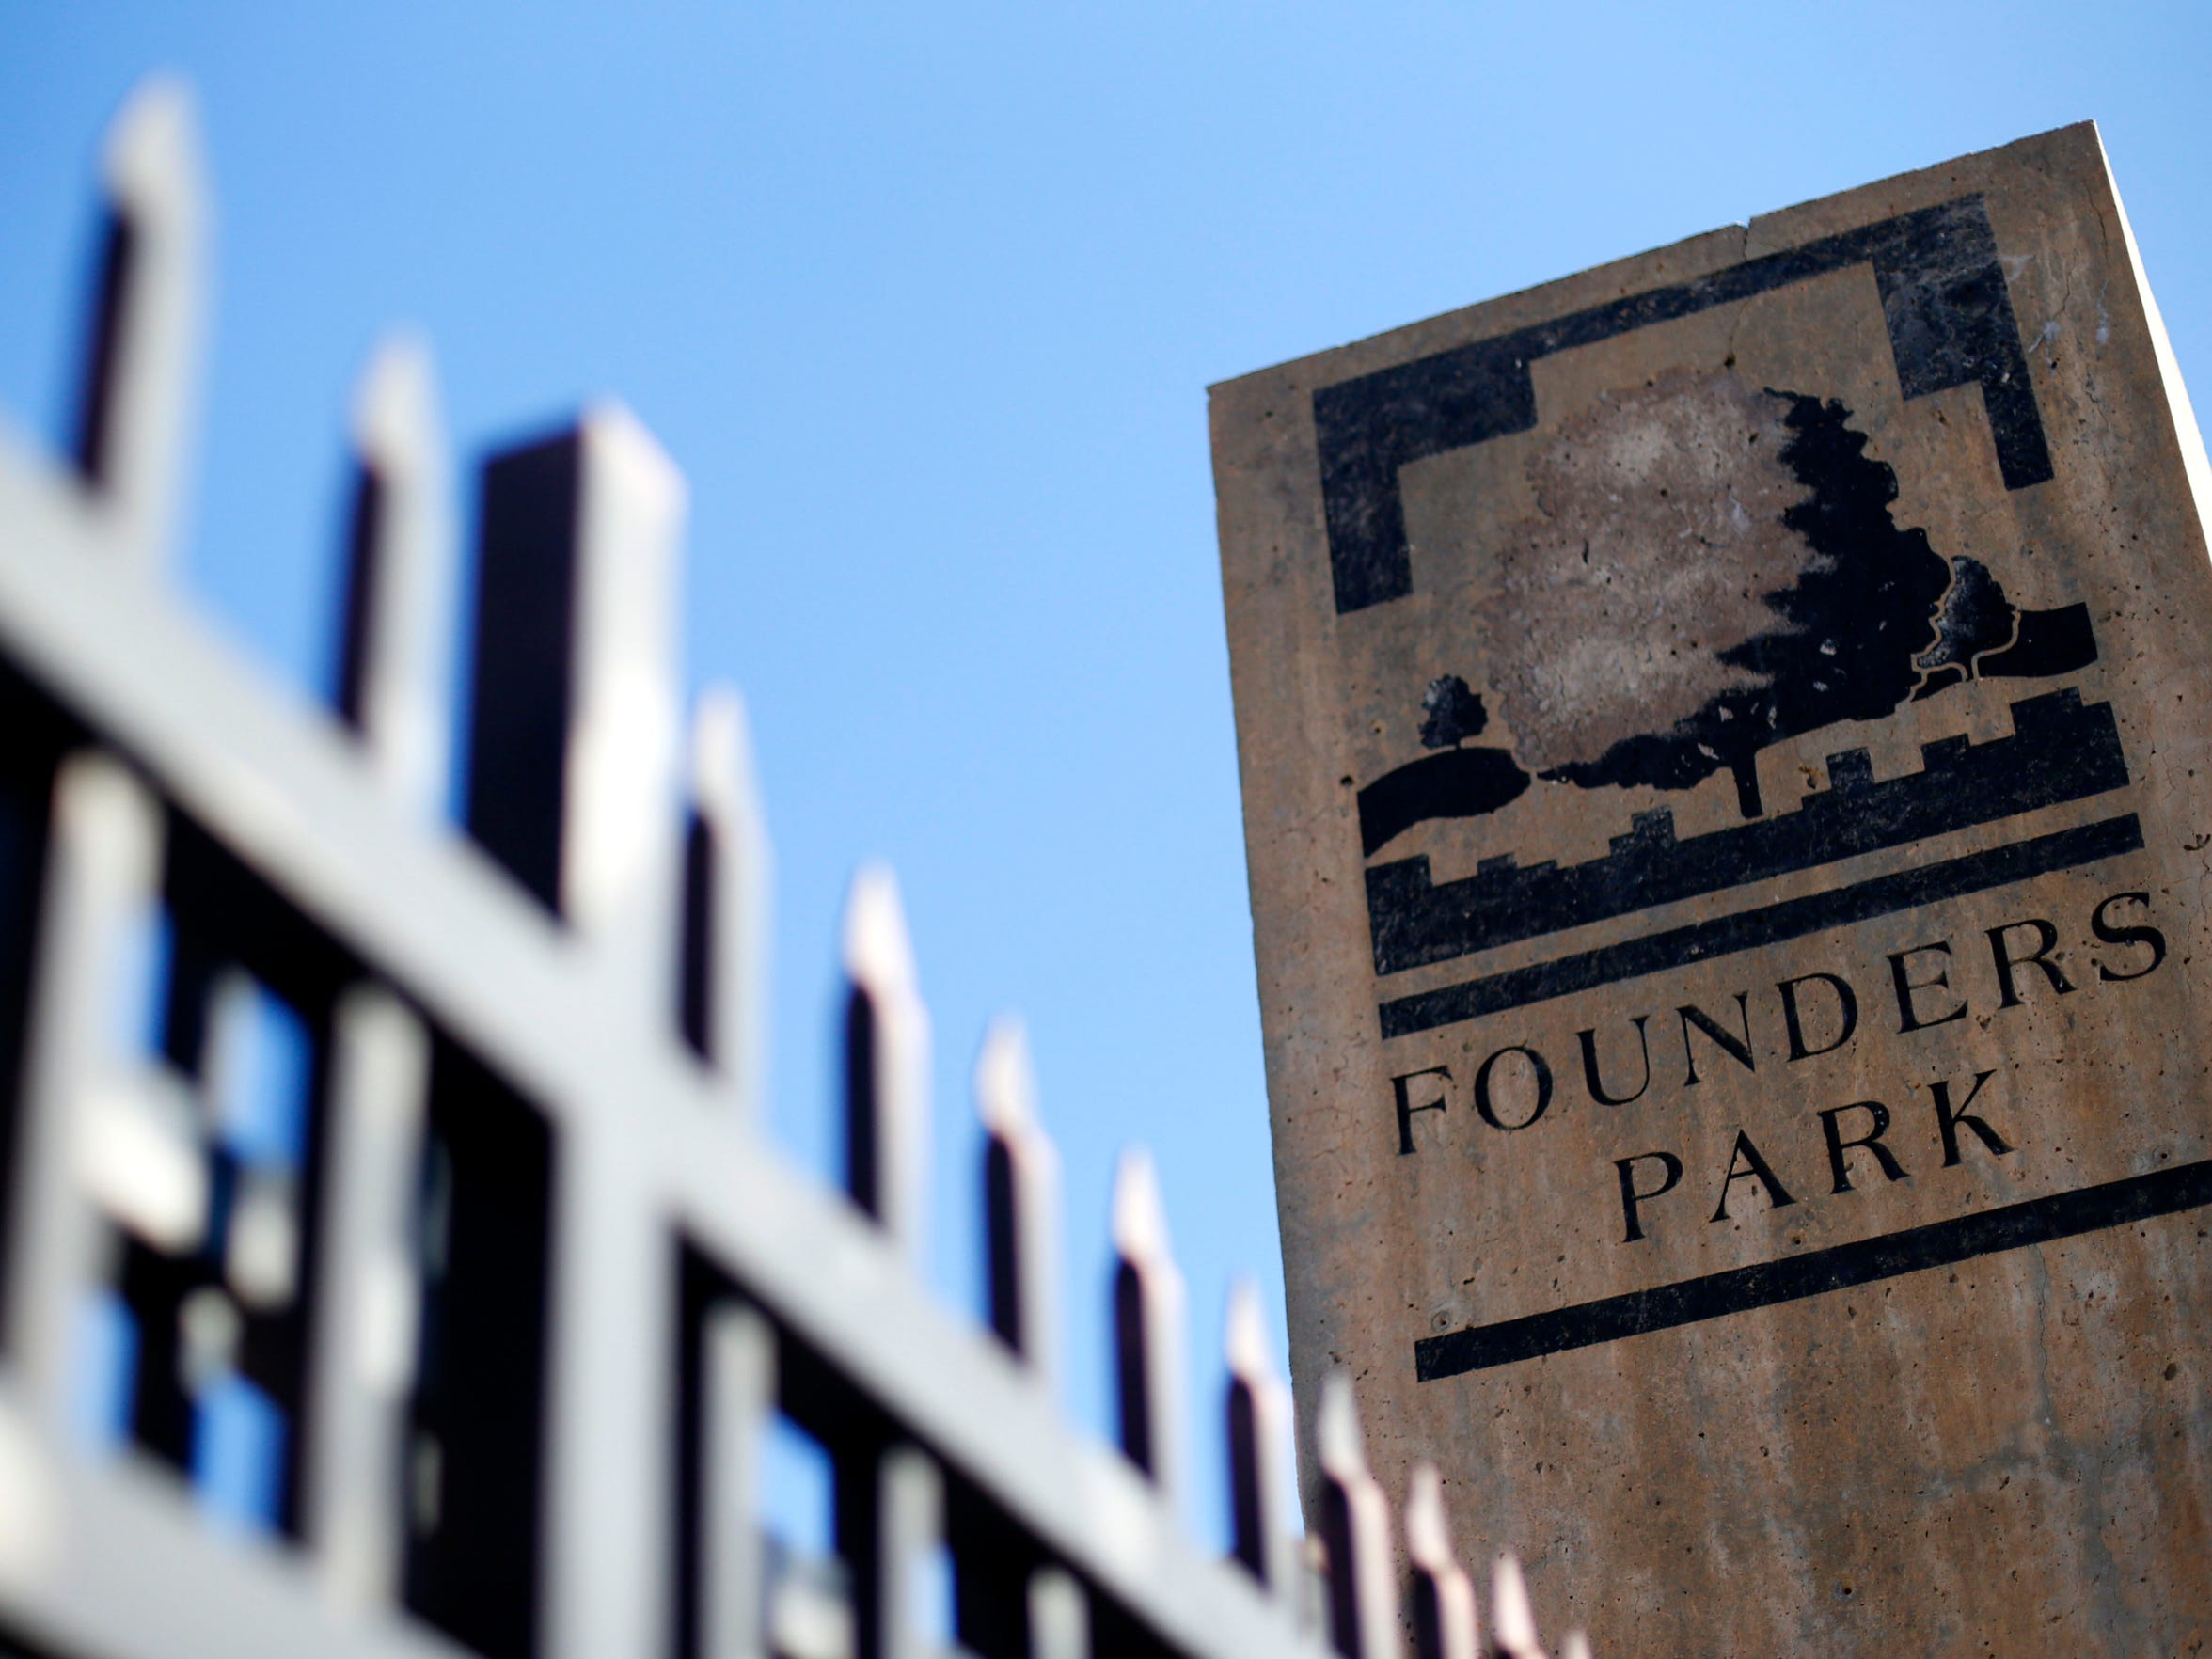 Founders Park, in downtown Springfield, is located where the city's founder John Polk Campbell once lived.